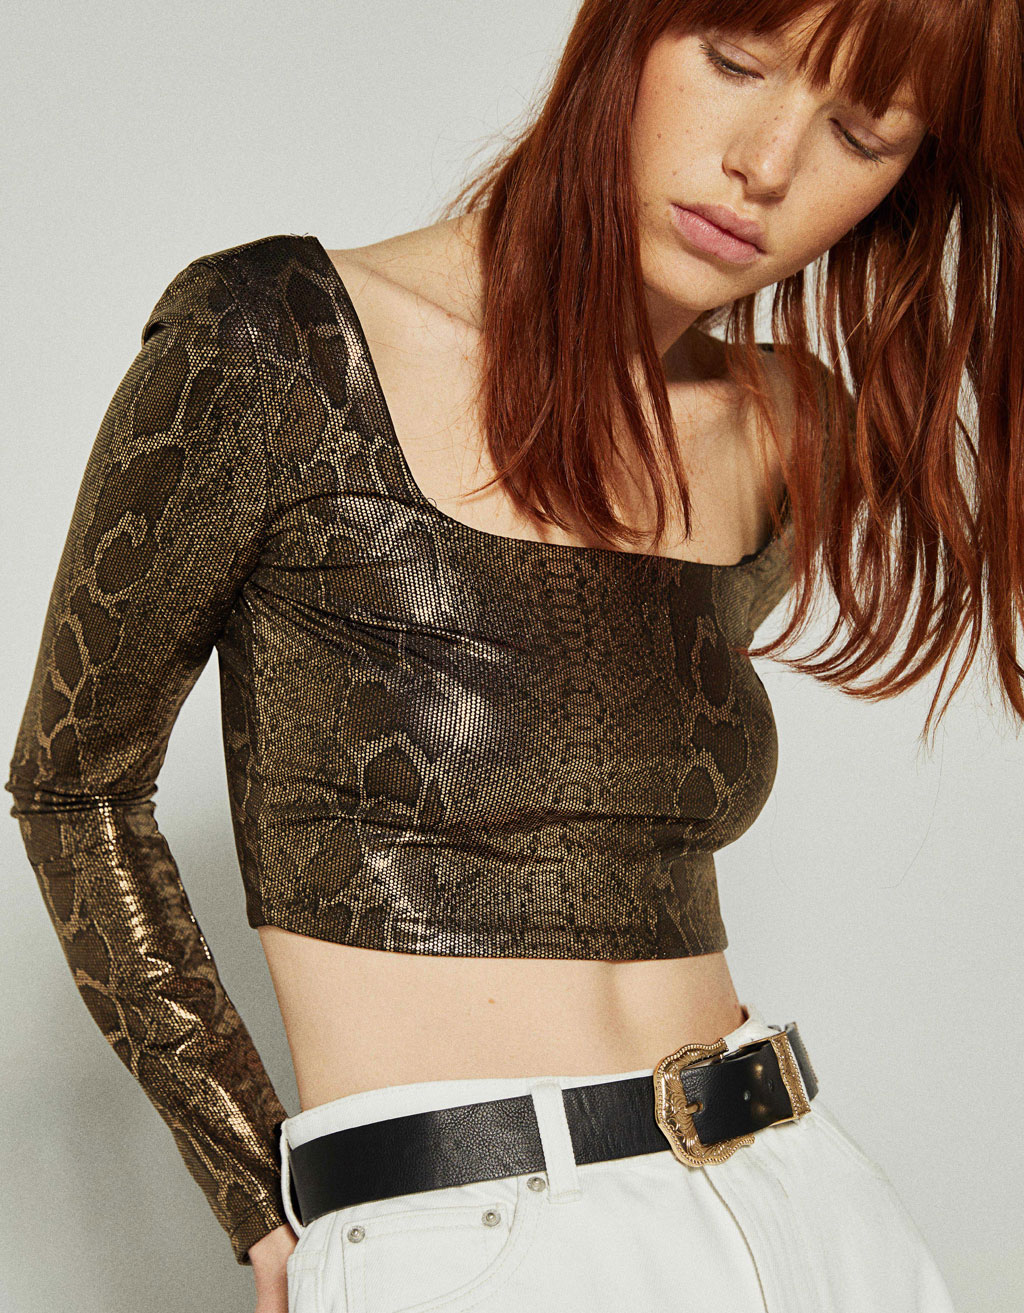 Metallic snakeskin print top